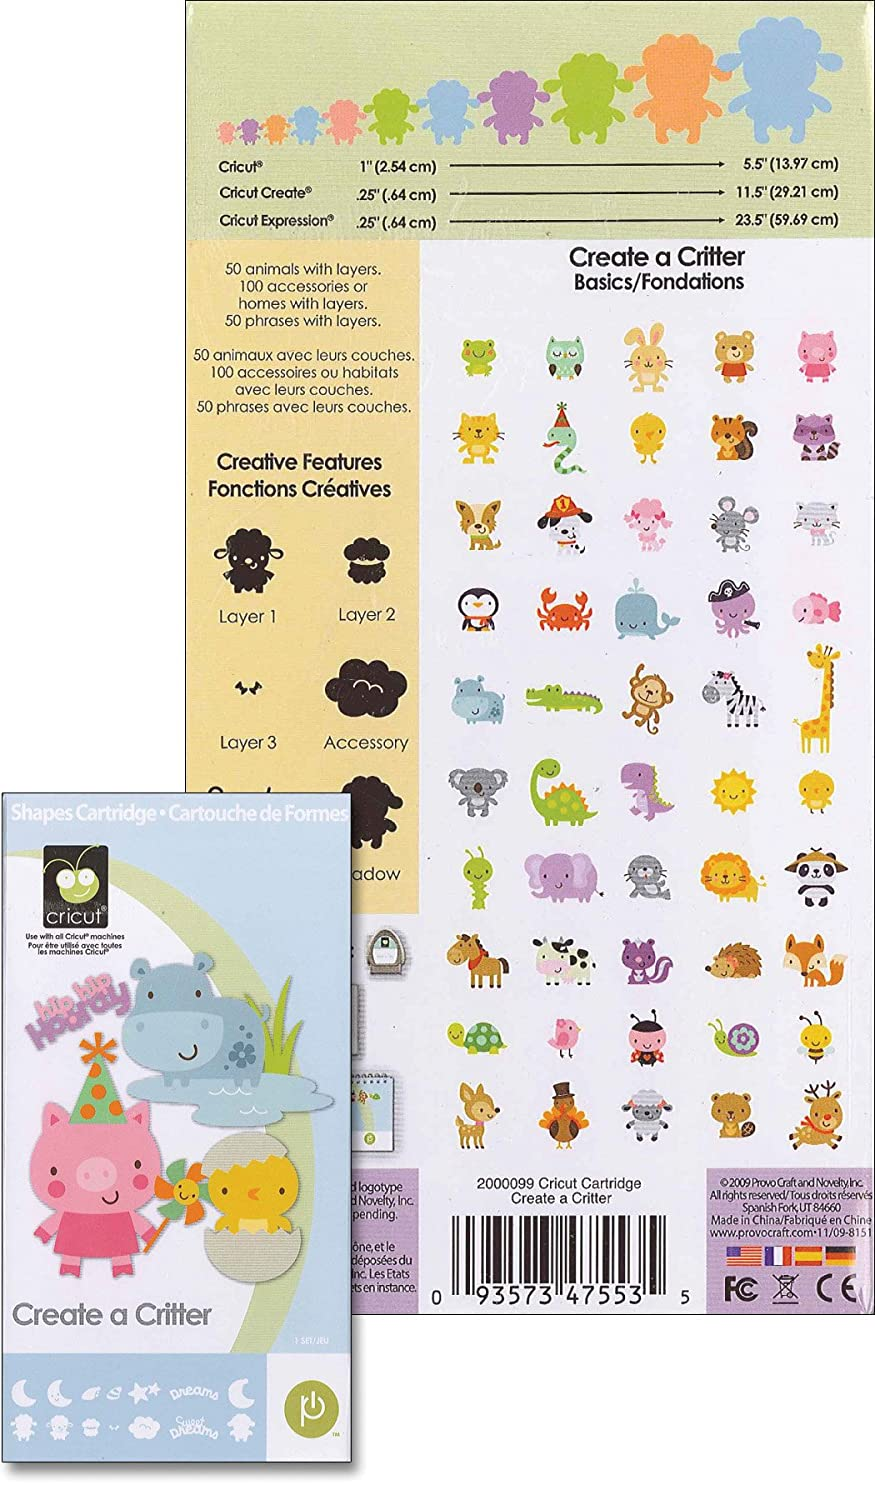 Cricut Cartridge, Create a Critter $28.1